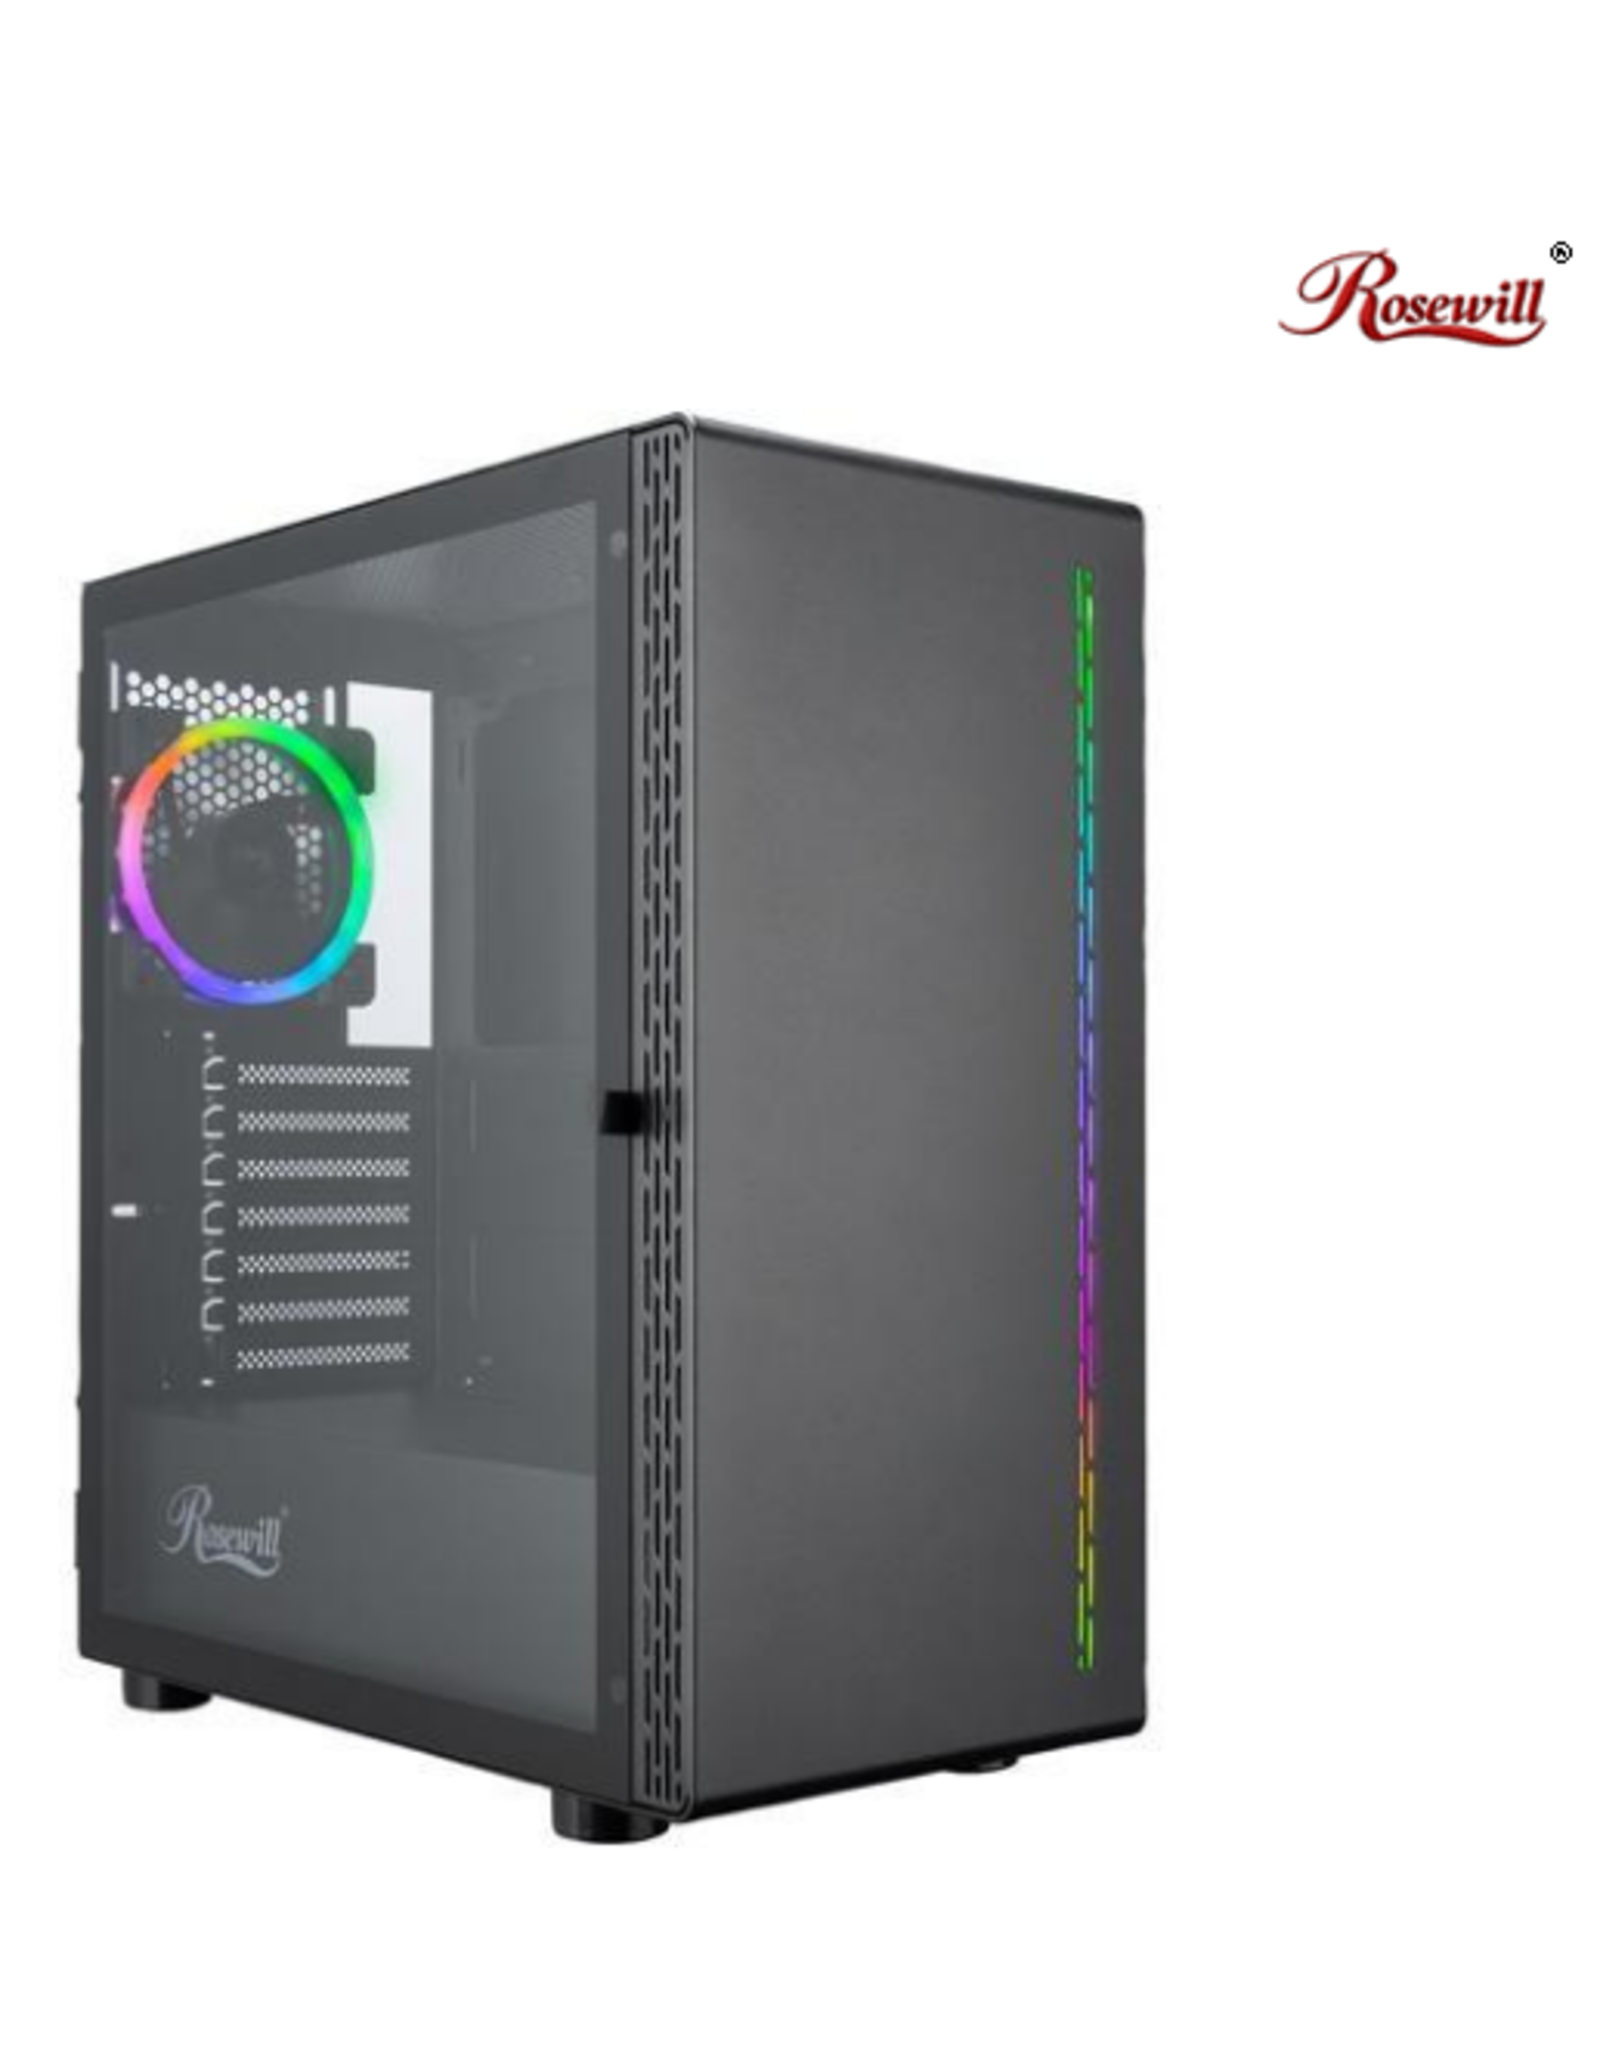 Rosewill Rosewill PRISM M ATX Mid Tower Gaming PC Computer Case w/ RGB Fan, 10 Backlit Modes, LED Light Strip Patterned Front Panel, 240mm AIO Support, EATX Support, Bottom Mount PSU & HDD/SSD, Tempered Glass